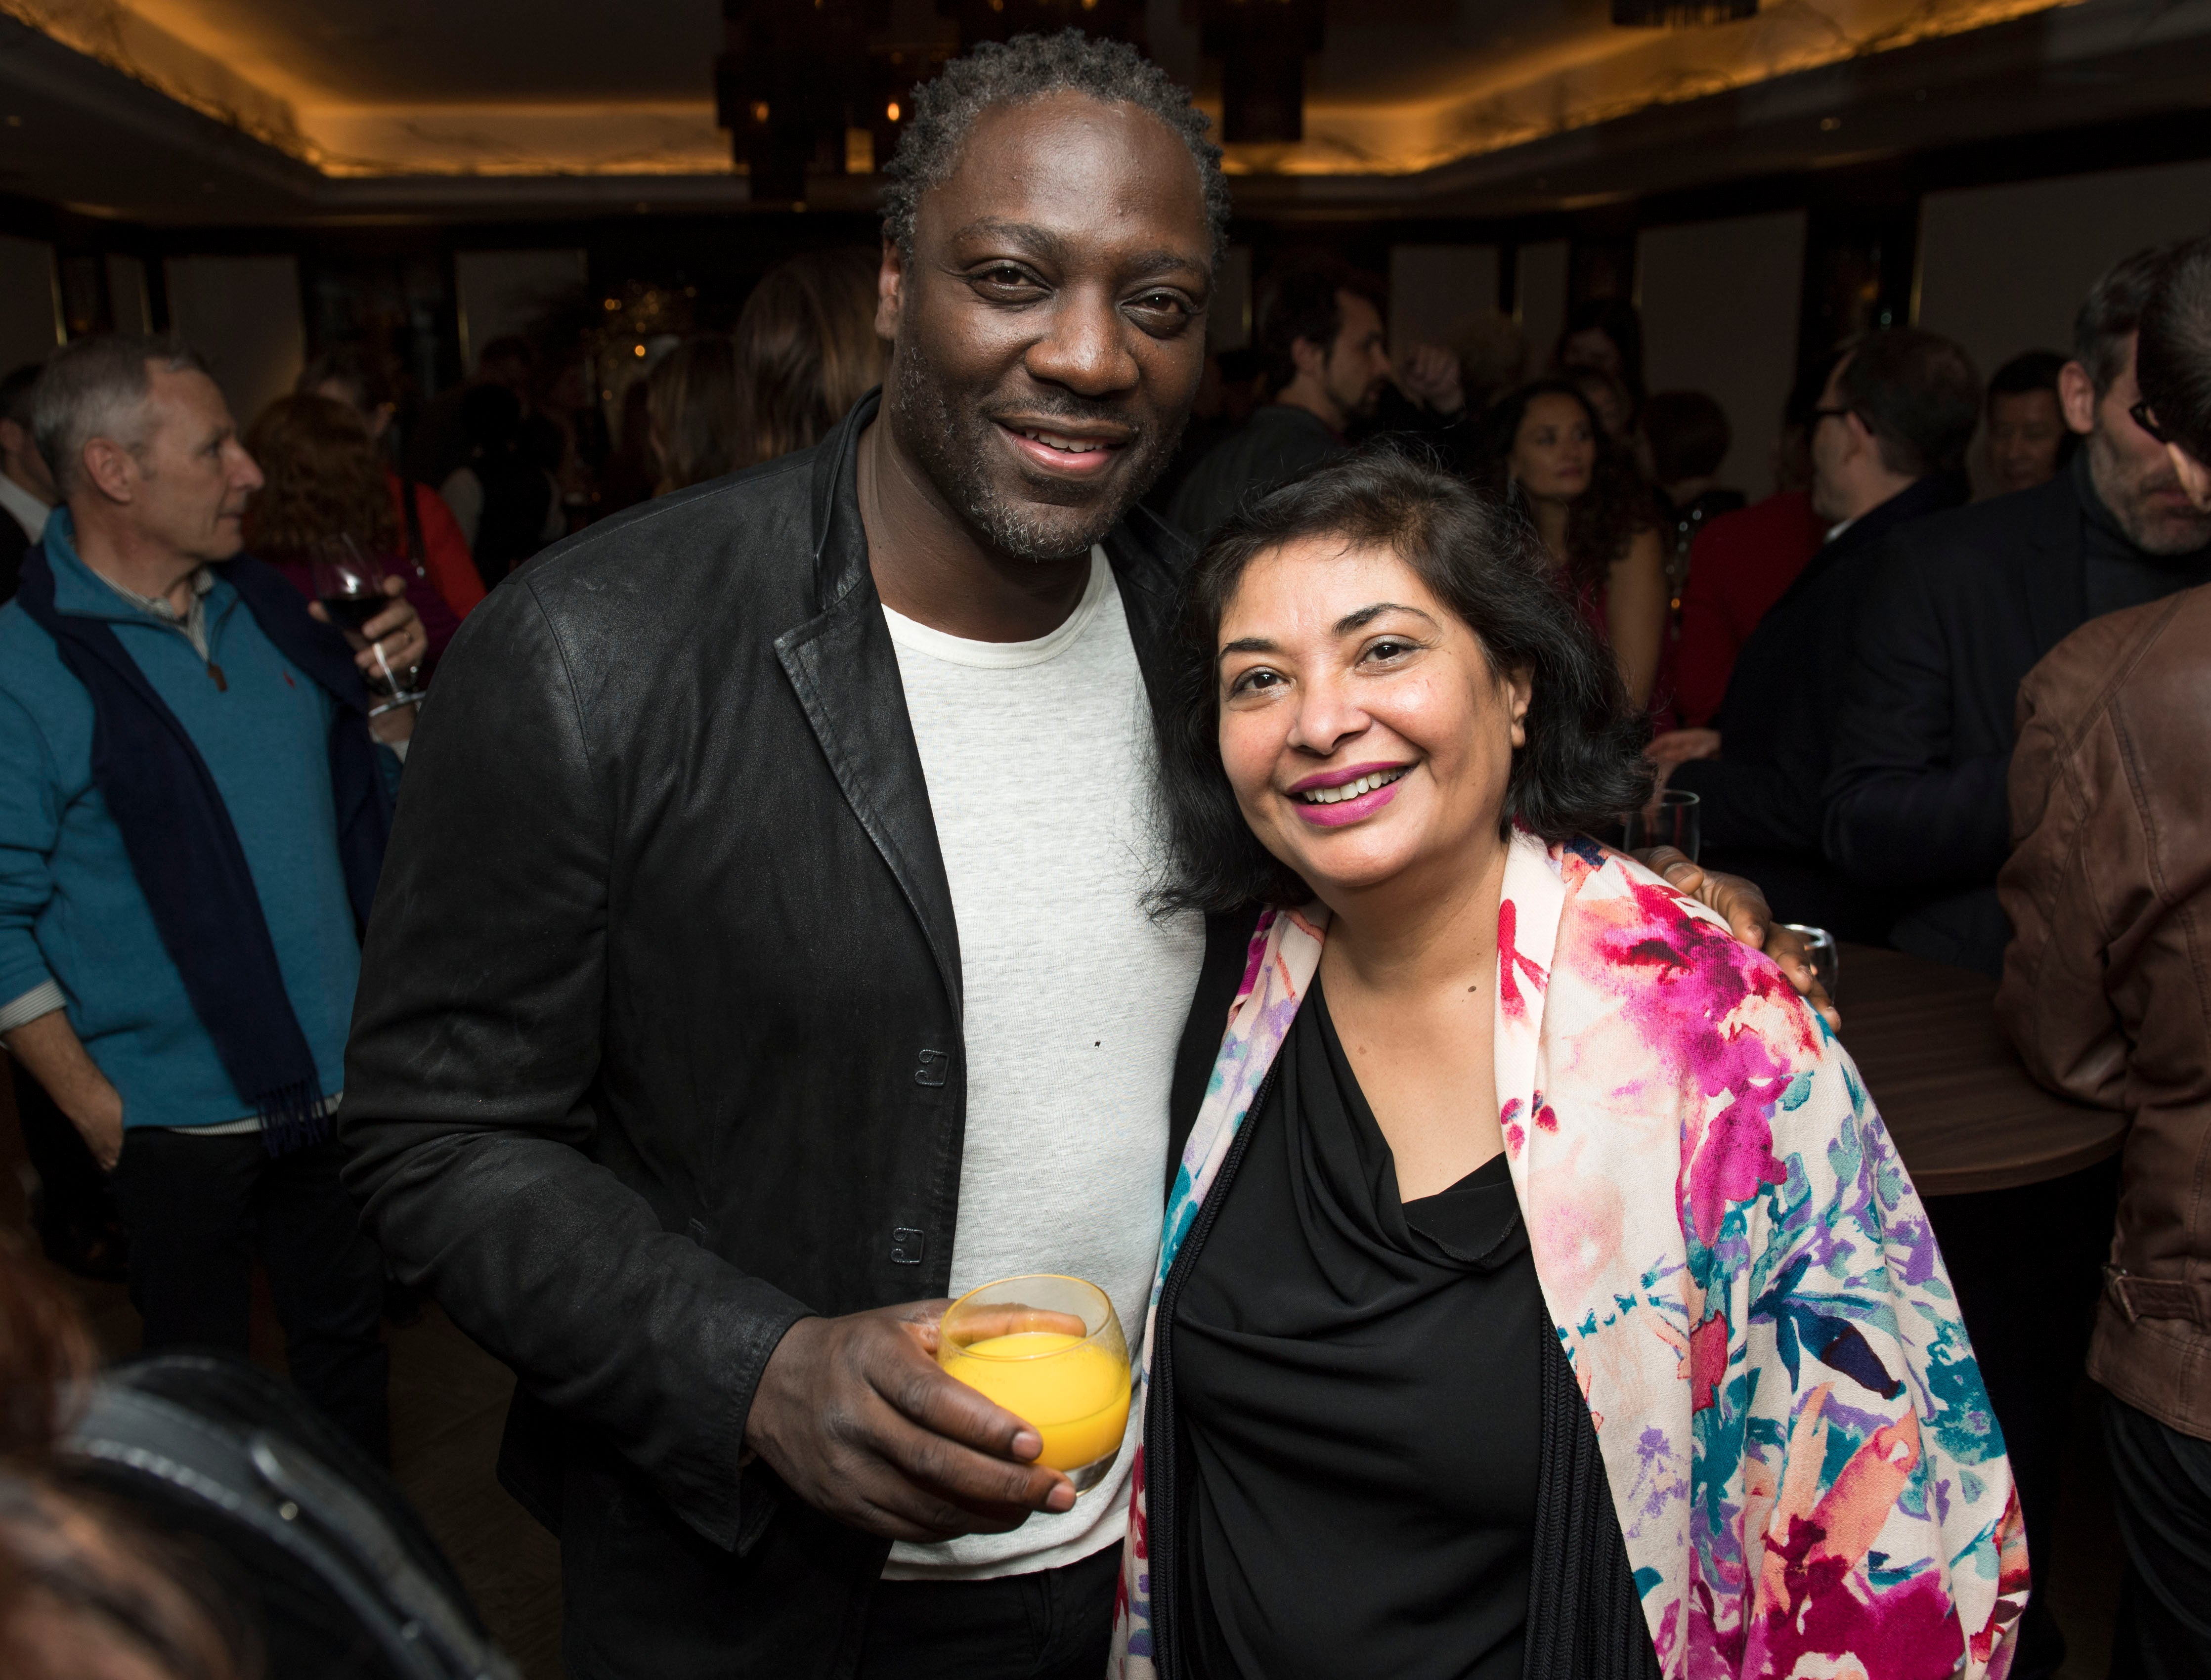 HFPA President Meher Tatna and actor Adewale Akinnuoye-Agbaje,  at the London Golden Globes Reception